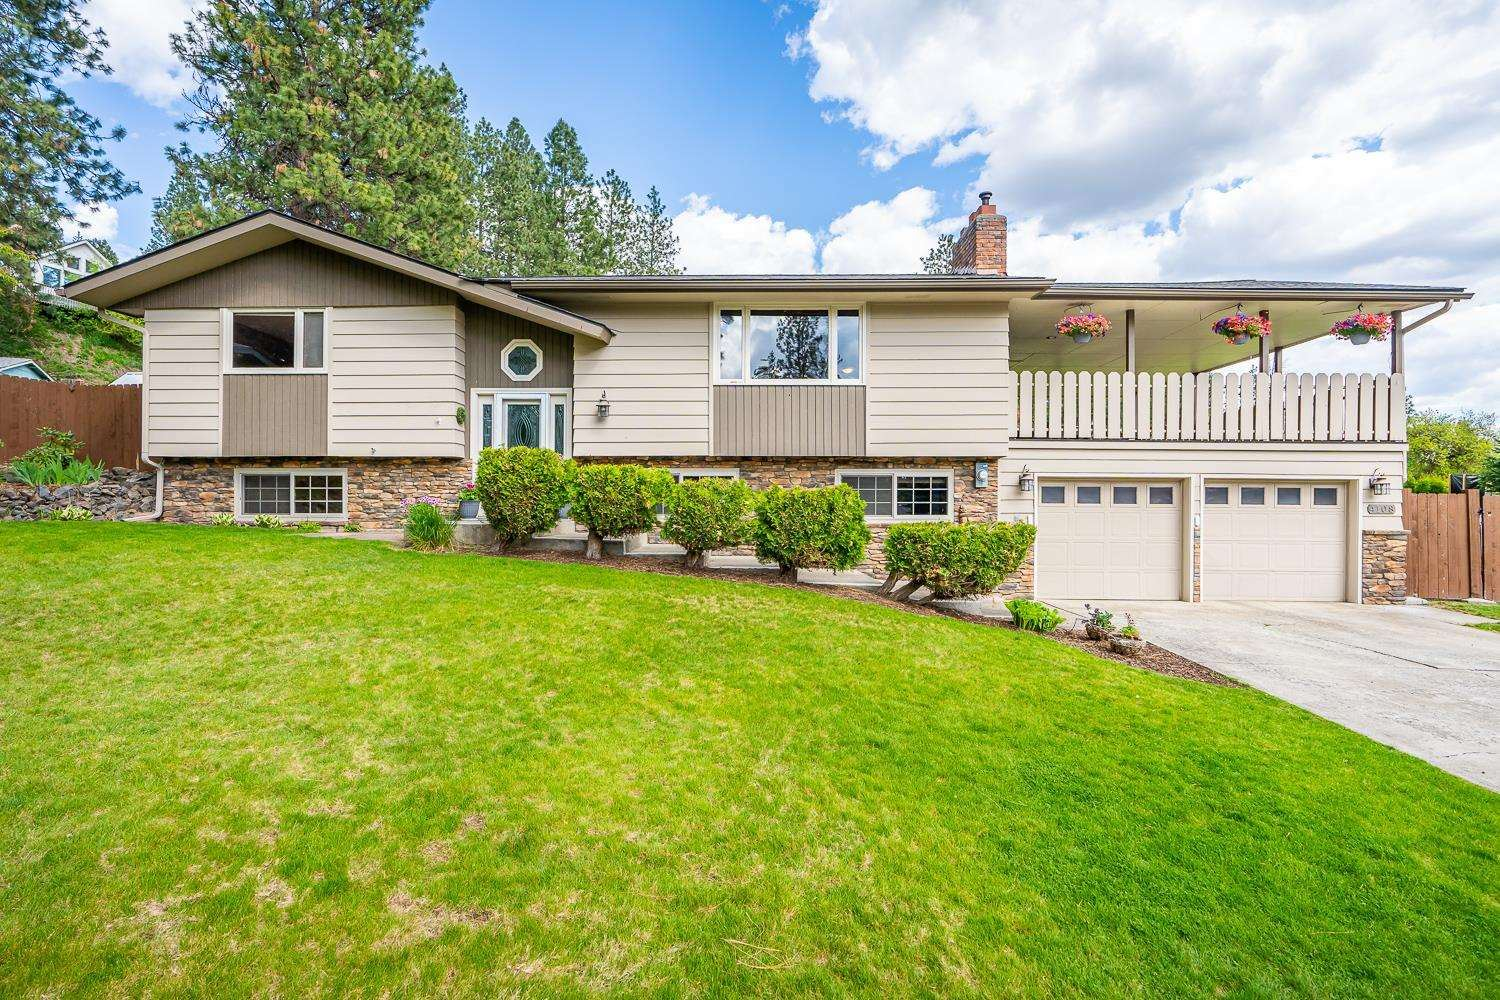 4108 W Arrowhead Ct, Spokane, WA 99208 - #: 202115443